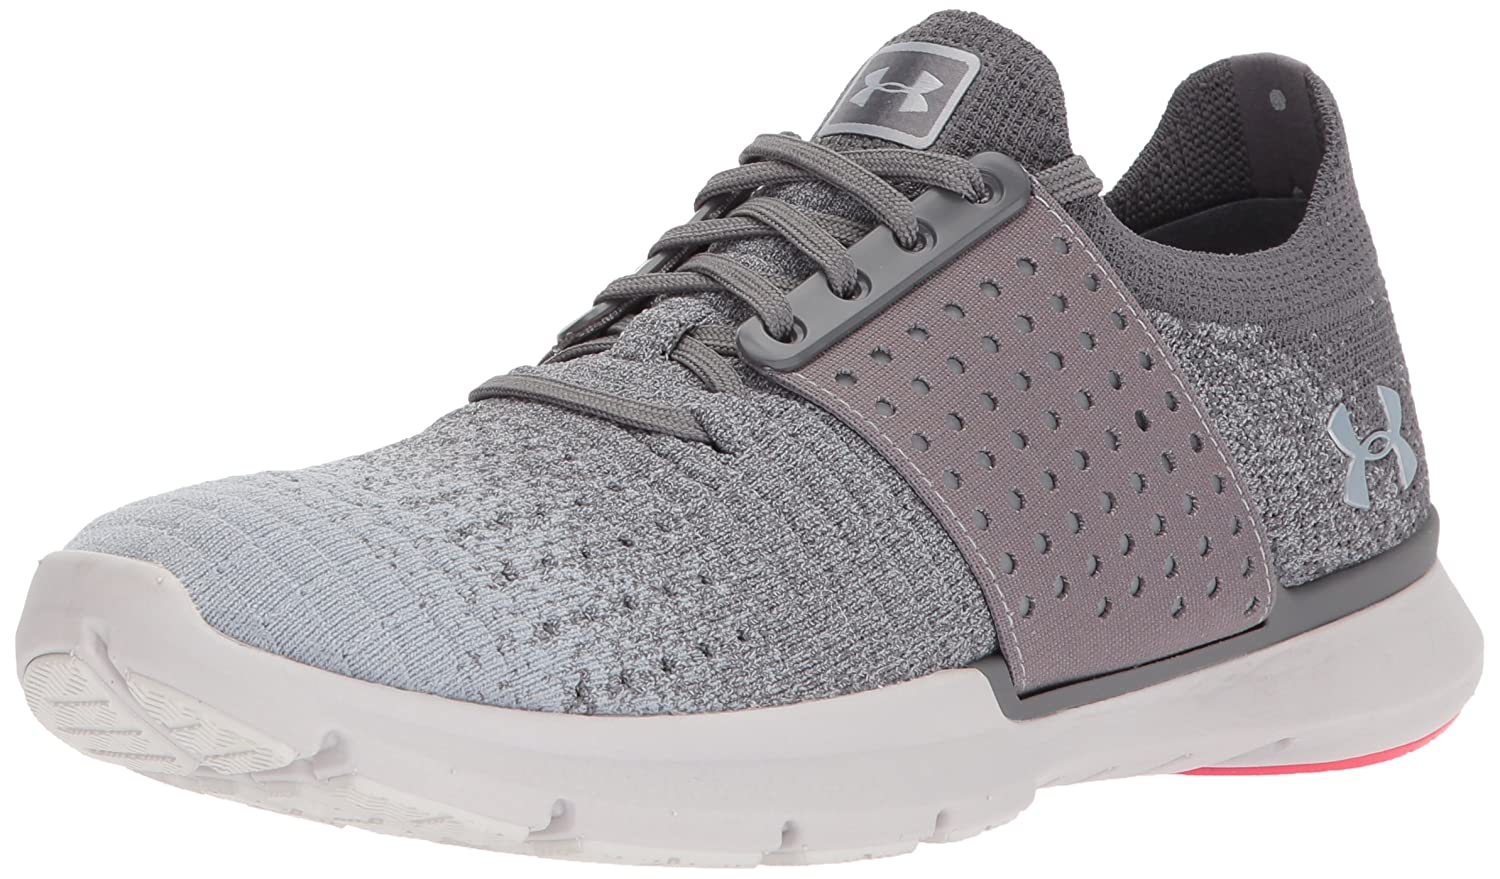 Under Armour Women's Speedform Slingwrap Fade Running Shoe B01N1QOCDV 10 M US|Graphite (101)/Glacier Gray